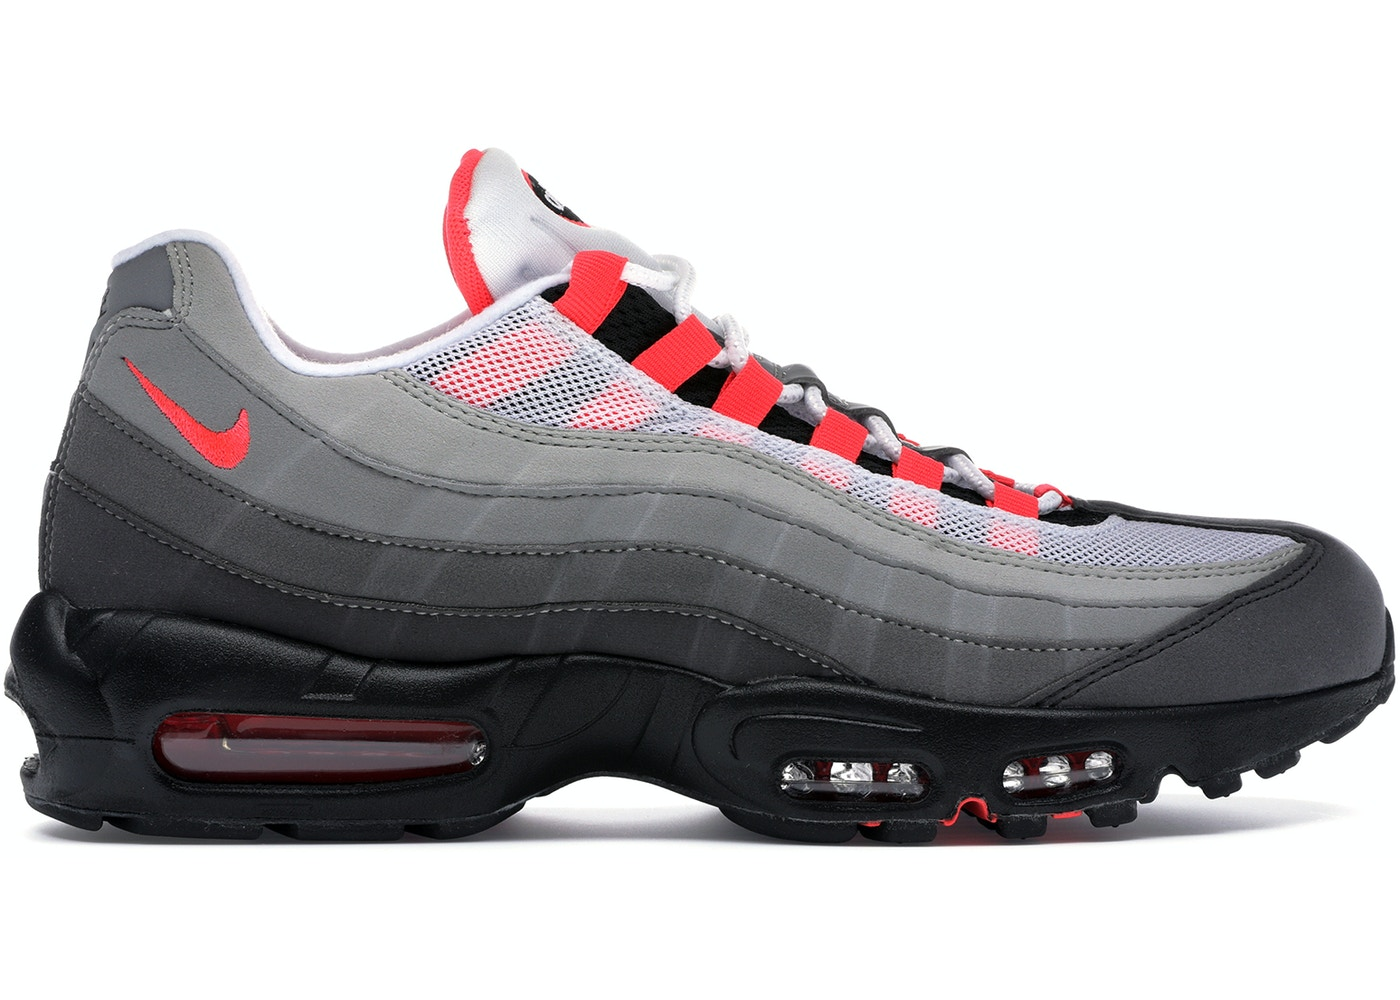 wholesale dealer 5ae6d 9a506 Buy Nike Air Max 95 Shoes & Deadstock Sneakers